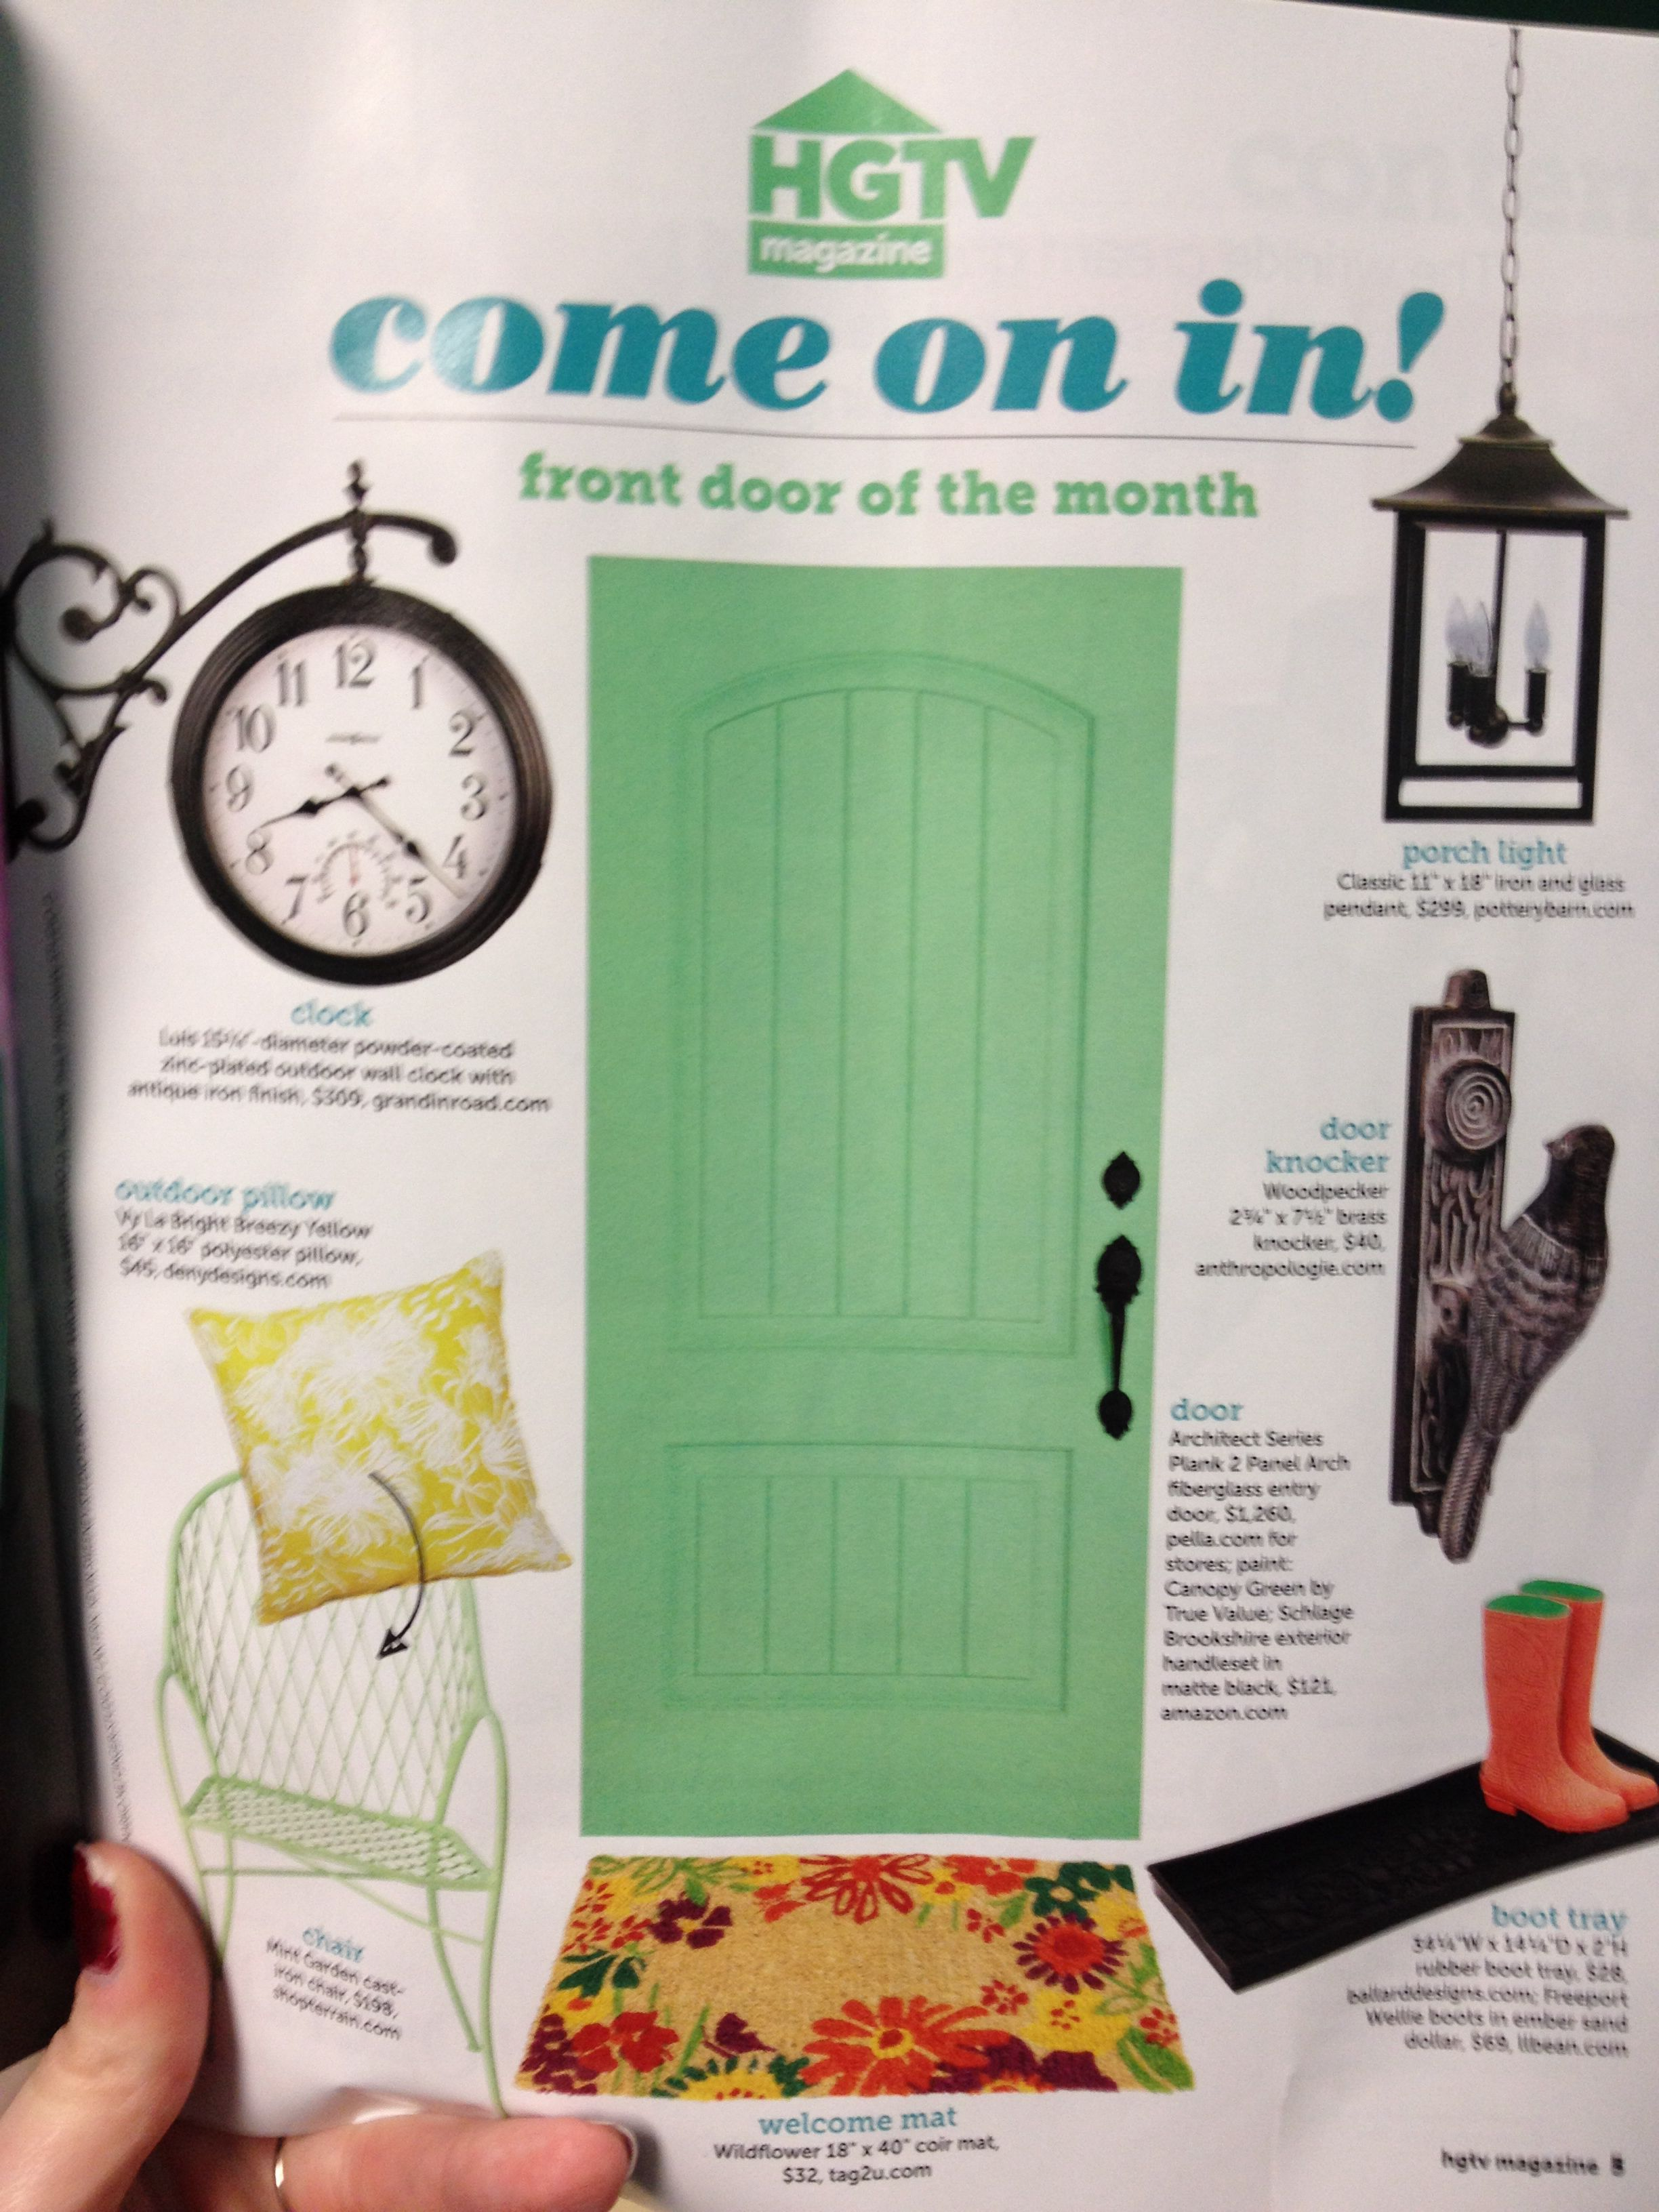 HGTV Magazine April Issue; Front Door Of The Month